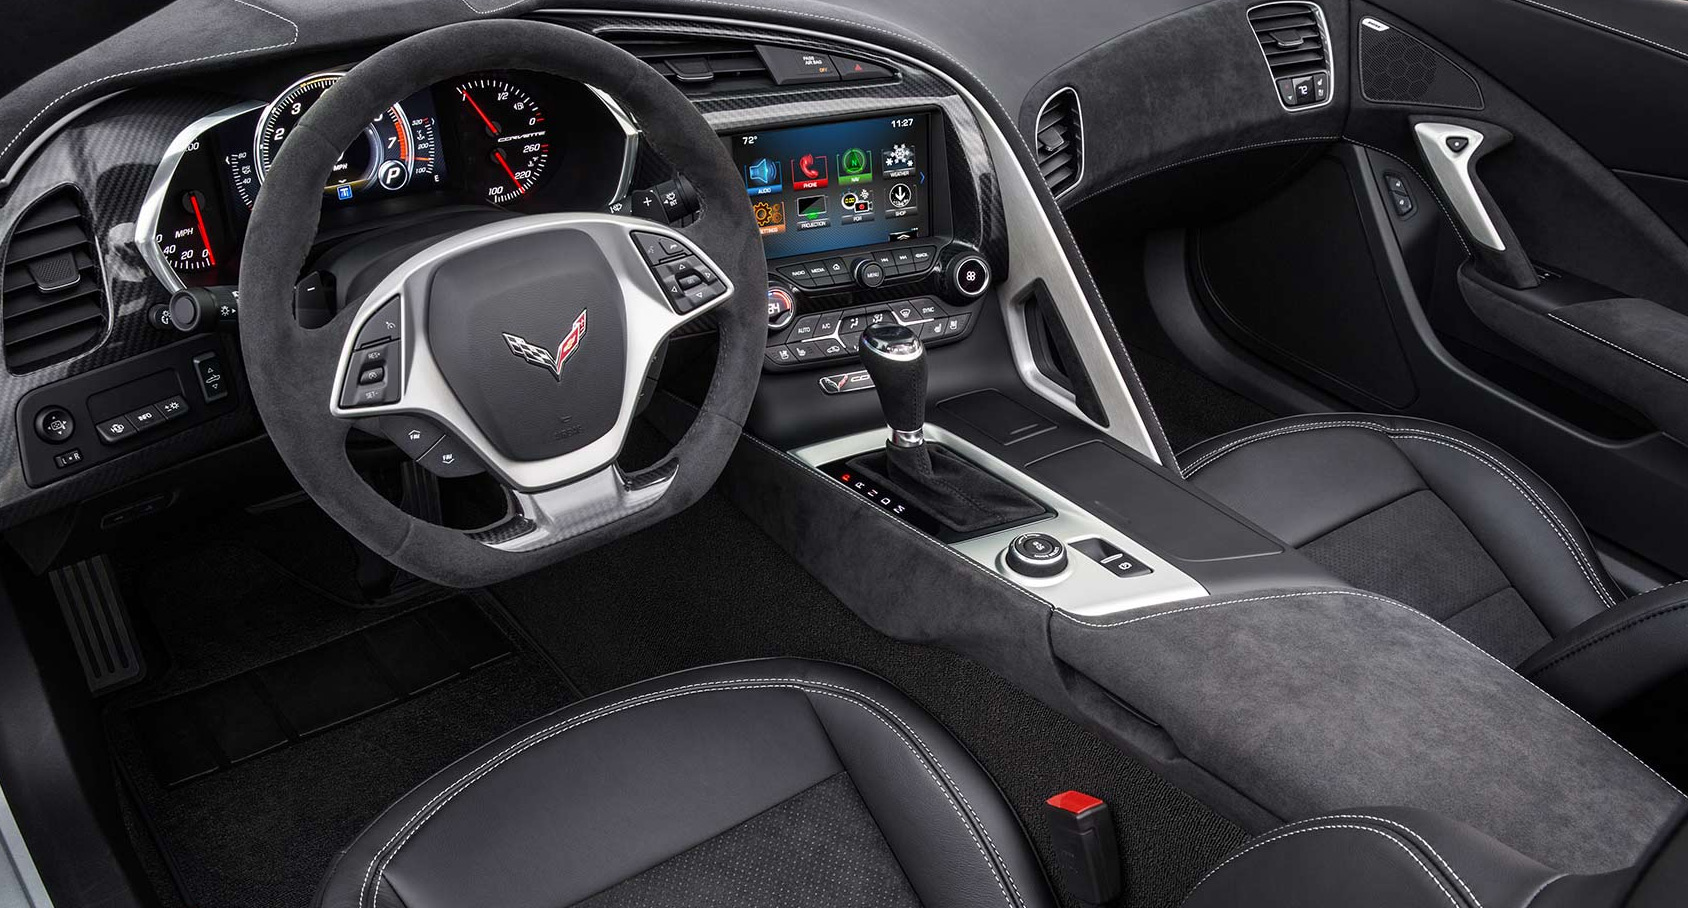 Valley Chevy - Man Buying New Chevrolet Vehicle: Corvette Interior